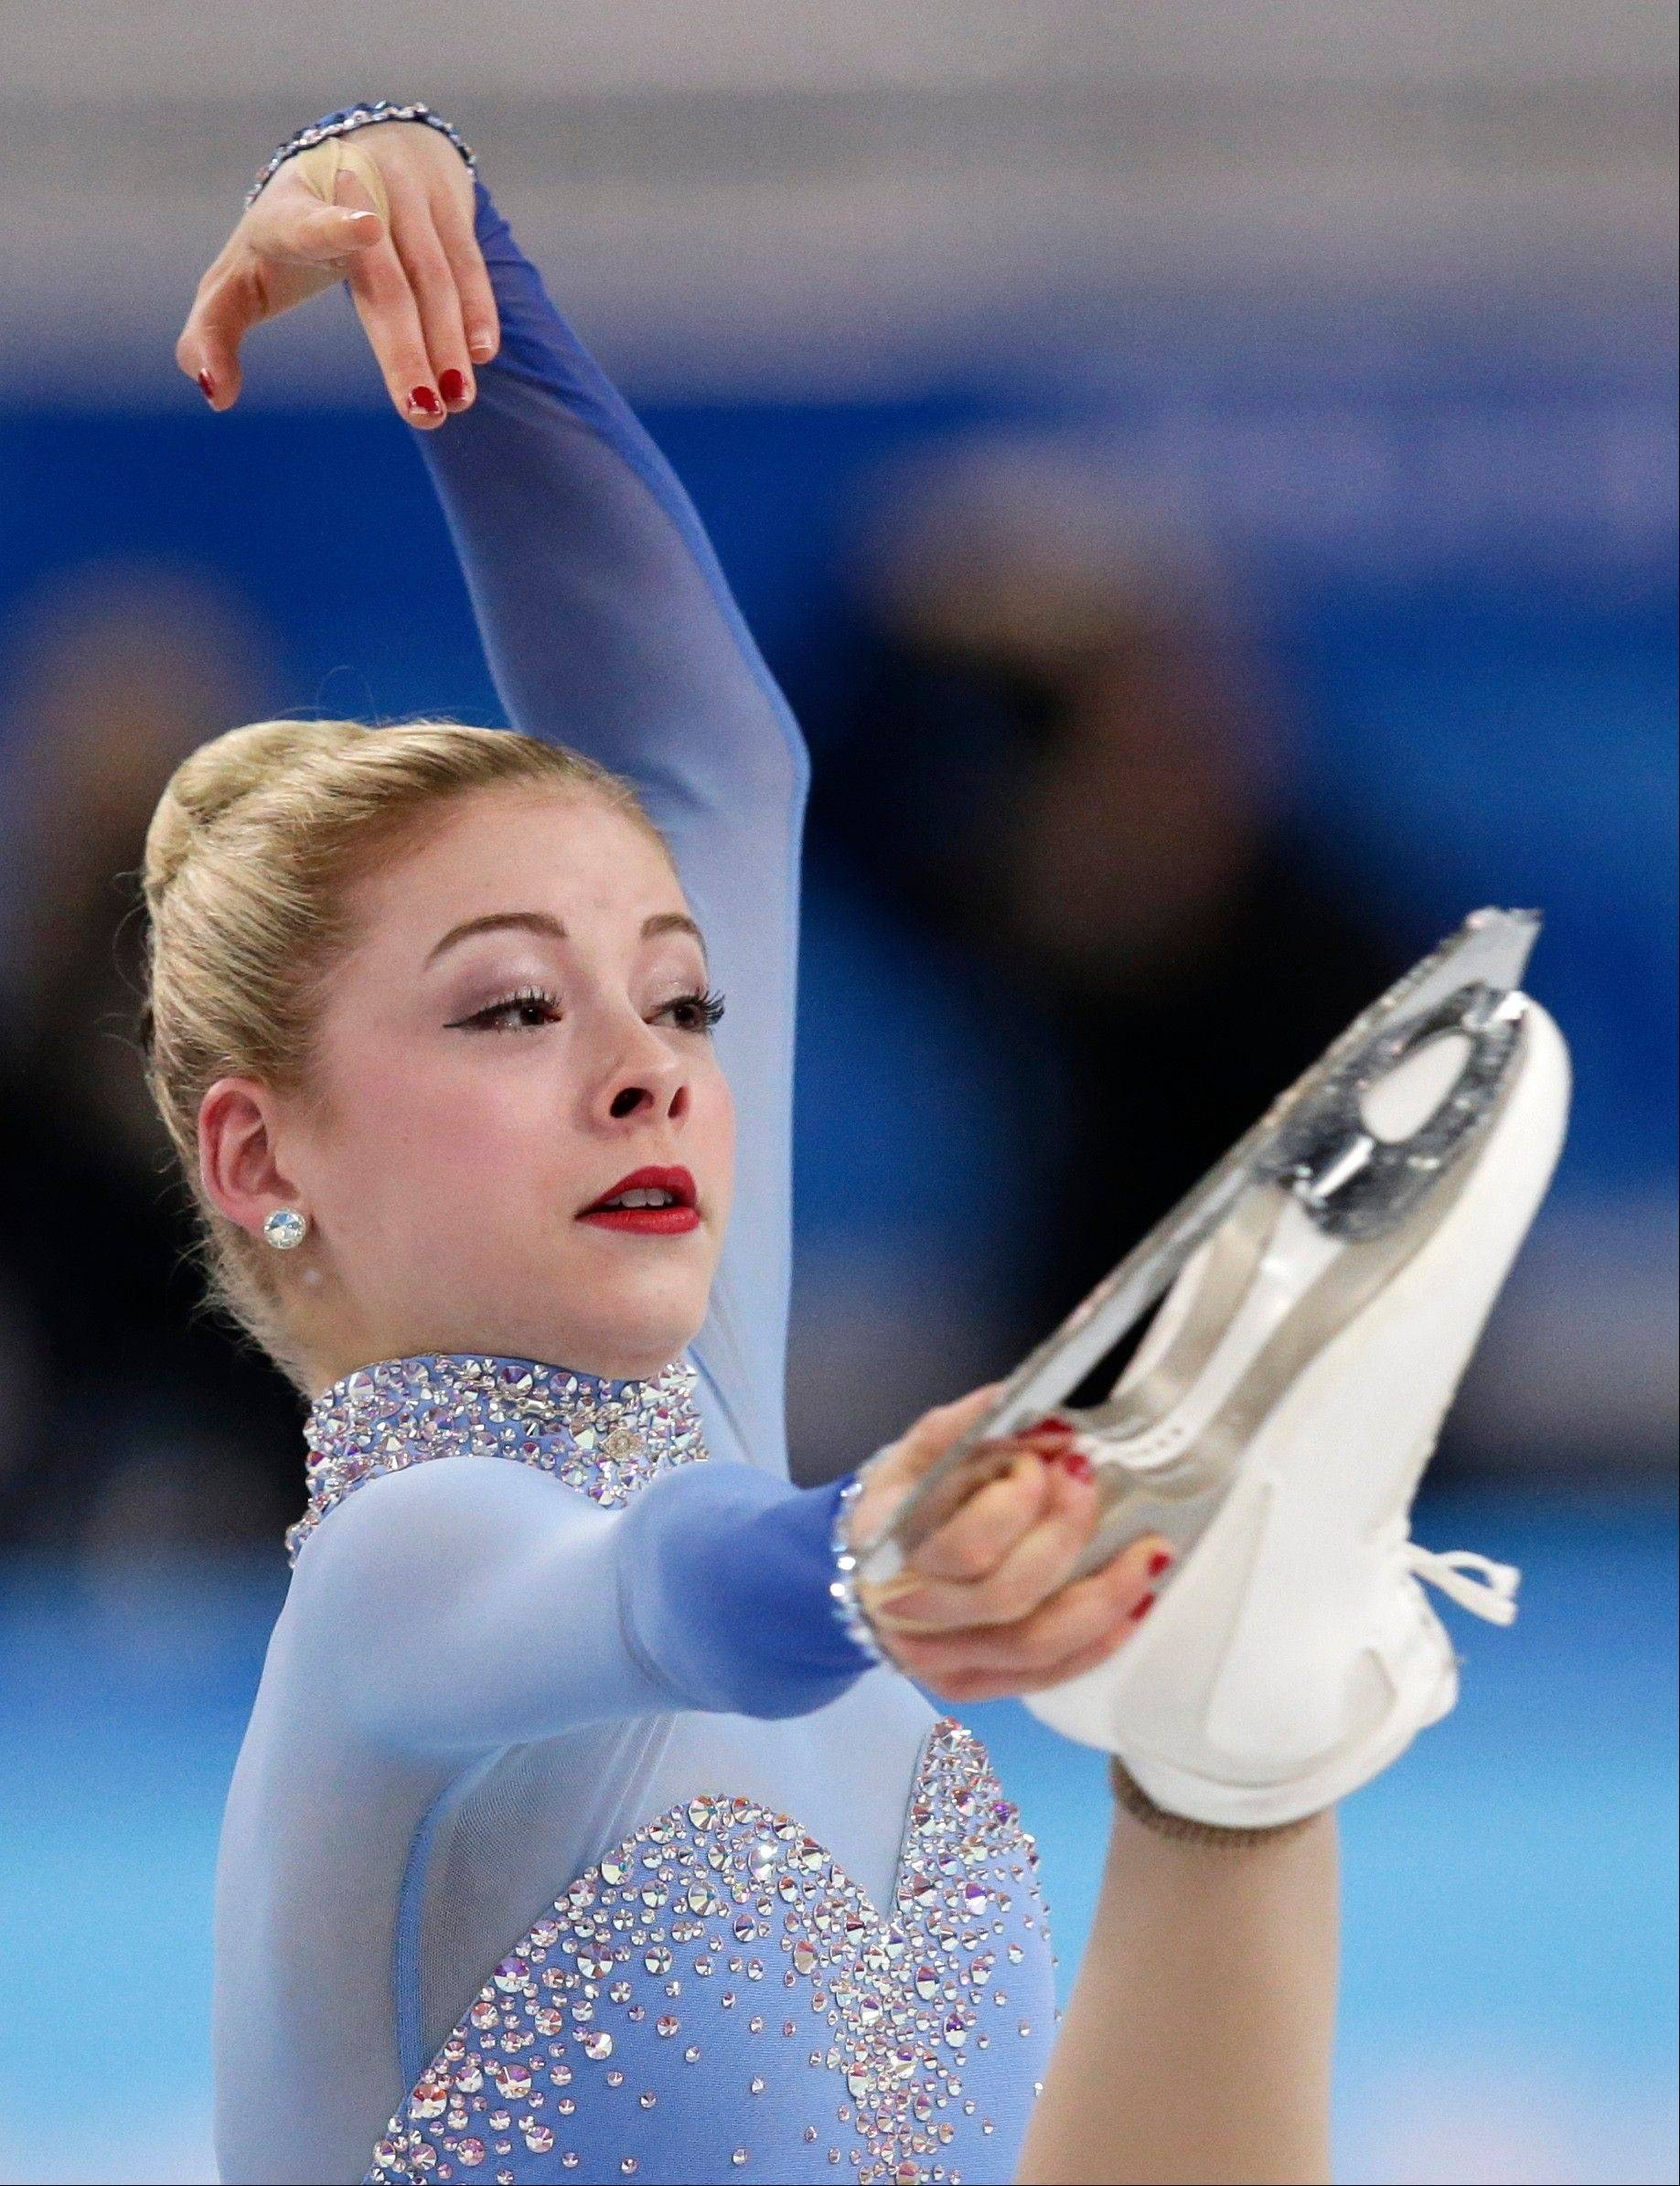 Gracie Gold competes Sunday in the women's team free skate figure skating competition at the Iceberg Skating Palace during the 2014 Winter Olympics in Sochi, Russia.